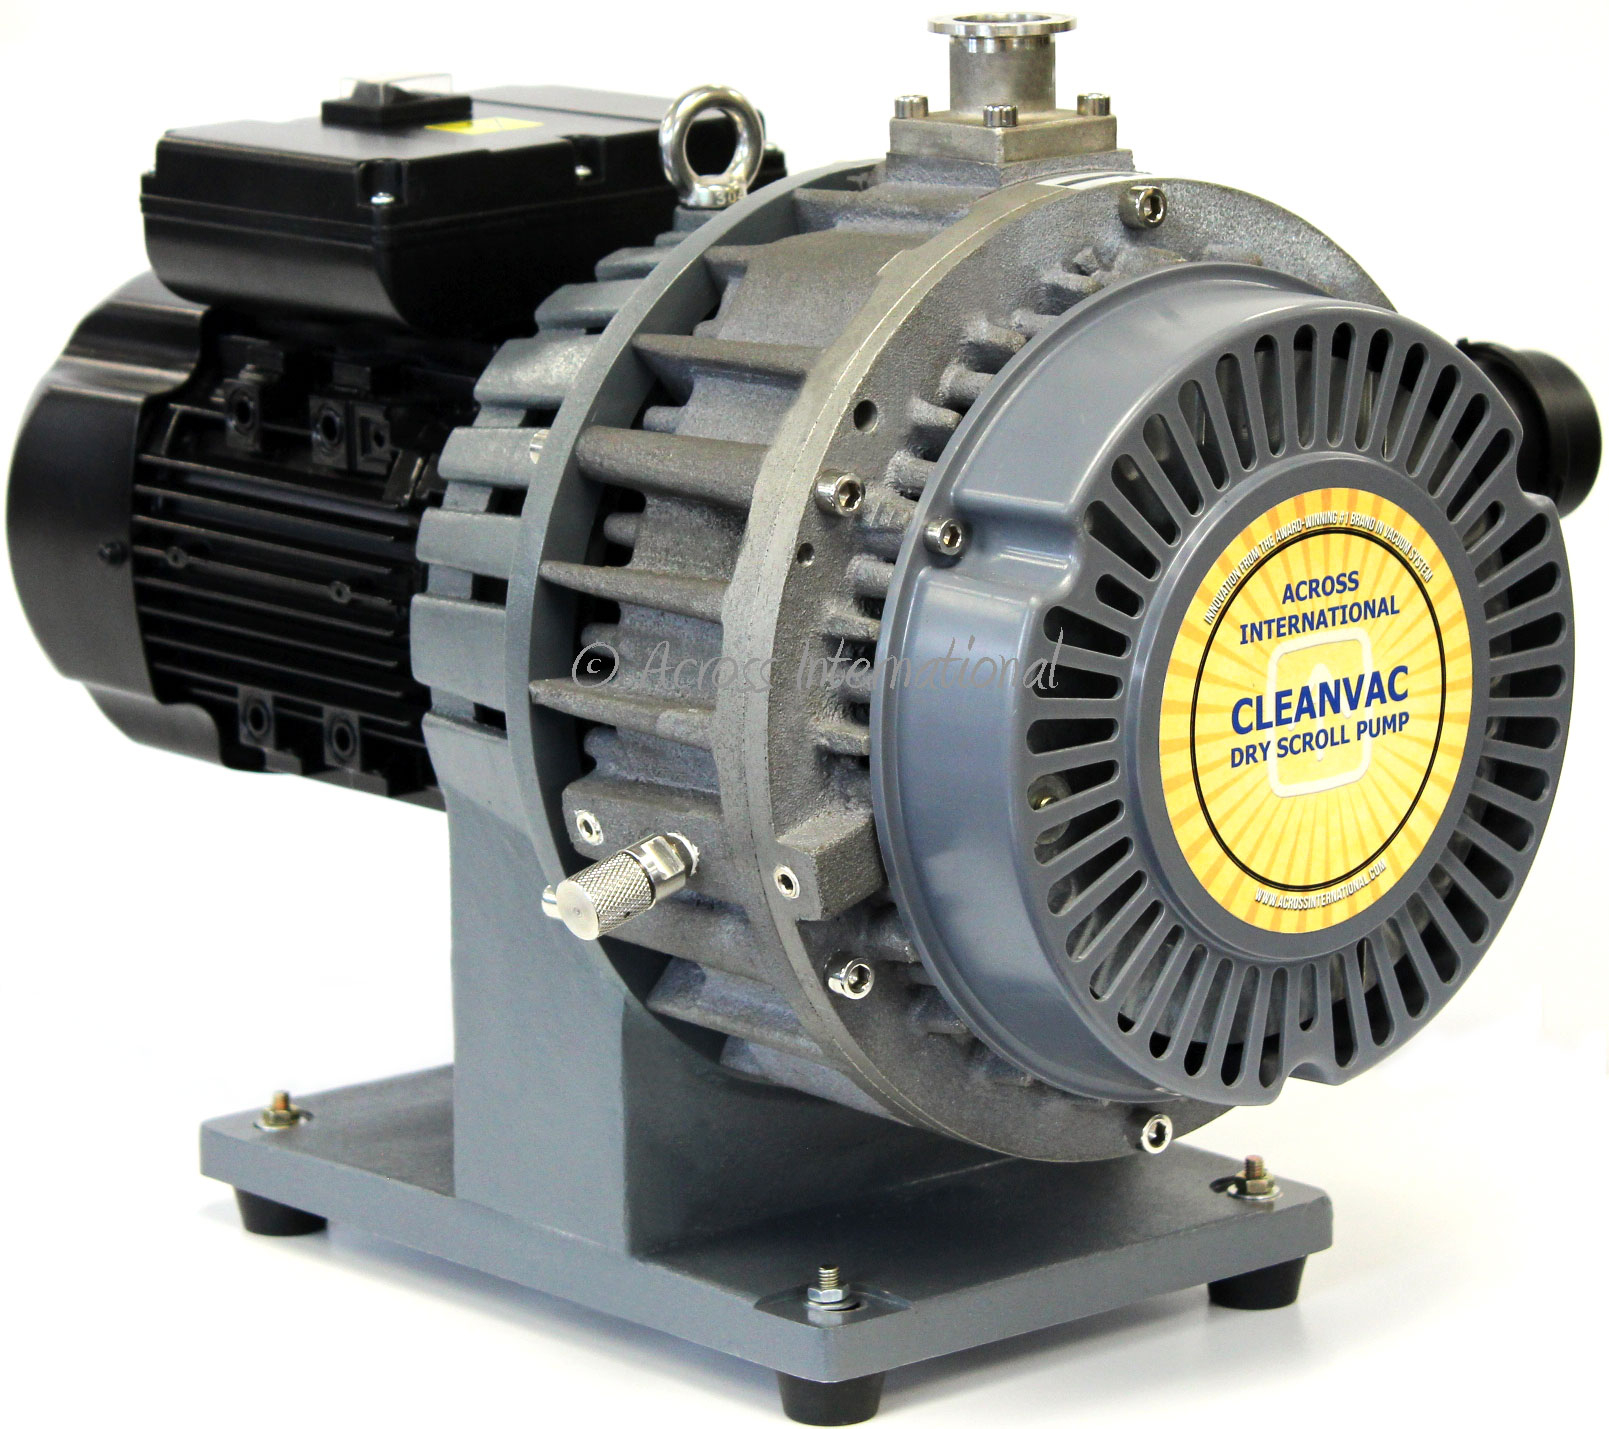 AI CleanVac 11 cfm Dry-Scroll Pump